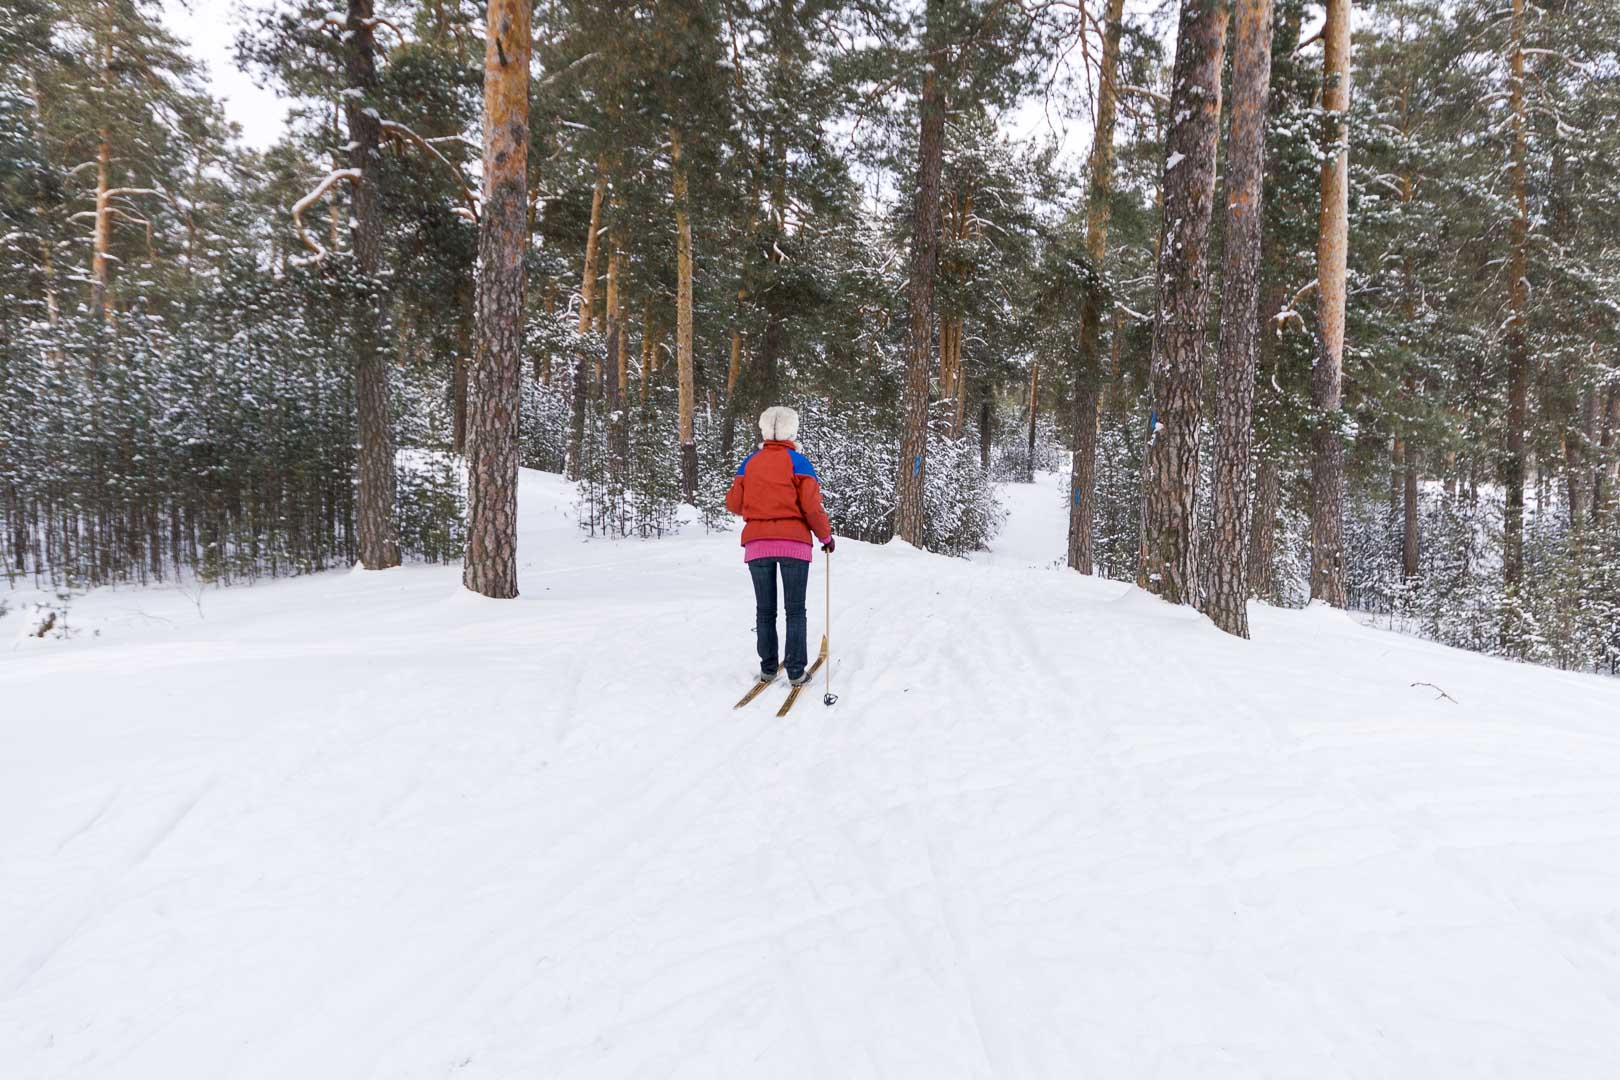 Cross Country Skiing Trail near Dzerzhinsk, Nizhegorodskaya Oblast – Russia